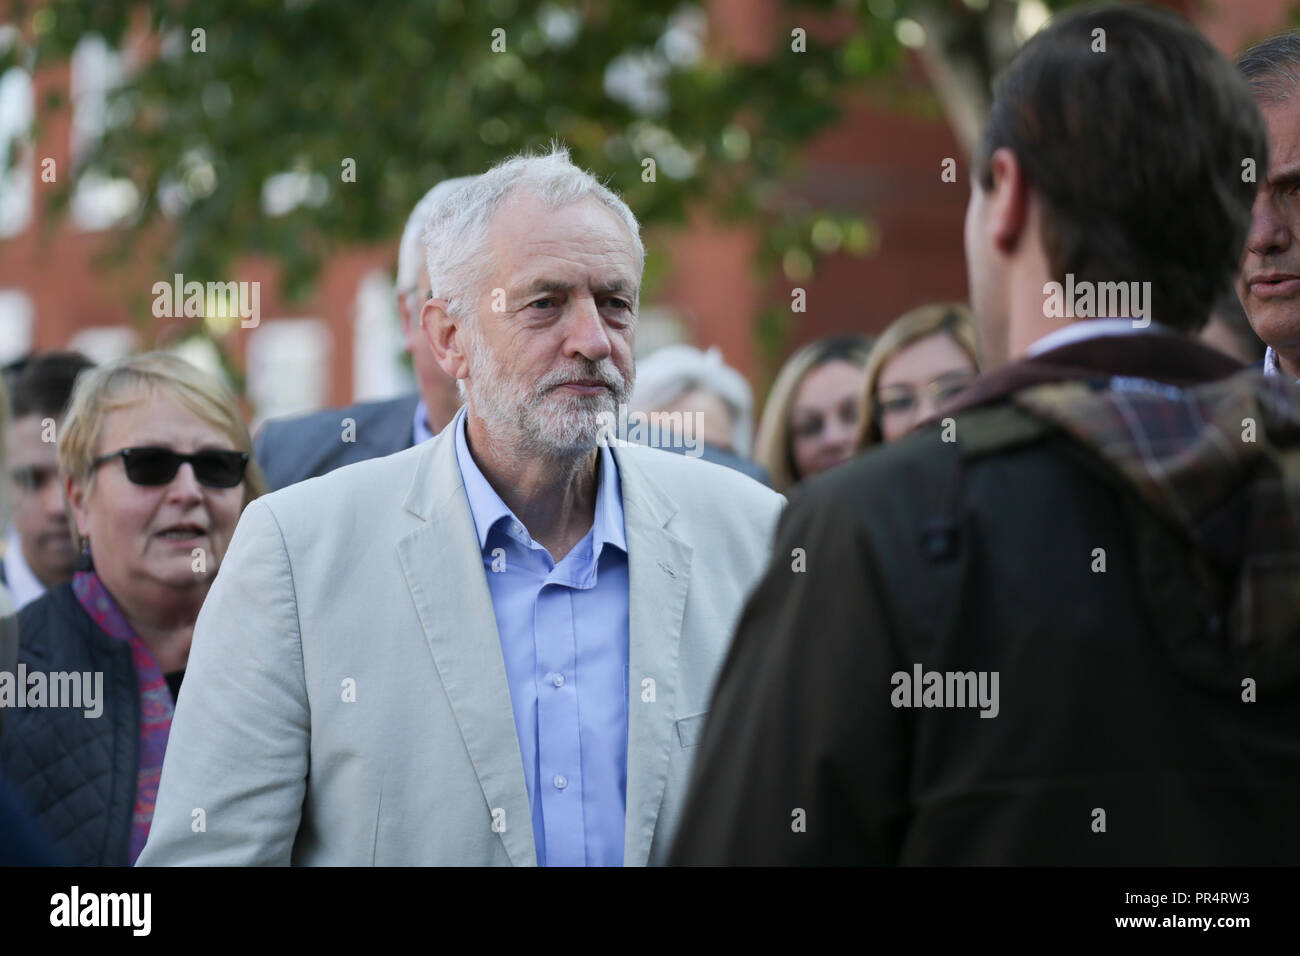 Halesowen, West Midlands, UK. 29th September, 2018. Labour leader Jeremy Corbyn arrives at a rally to gain support for Labour's campaign for the Halesowen and Rowley Regis constituency. Peter Lopeman/Alamy Live News - Stock Image